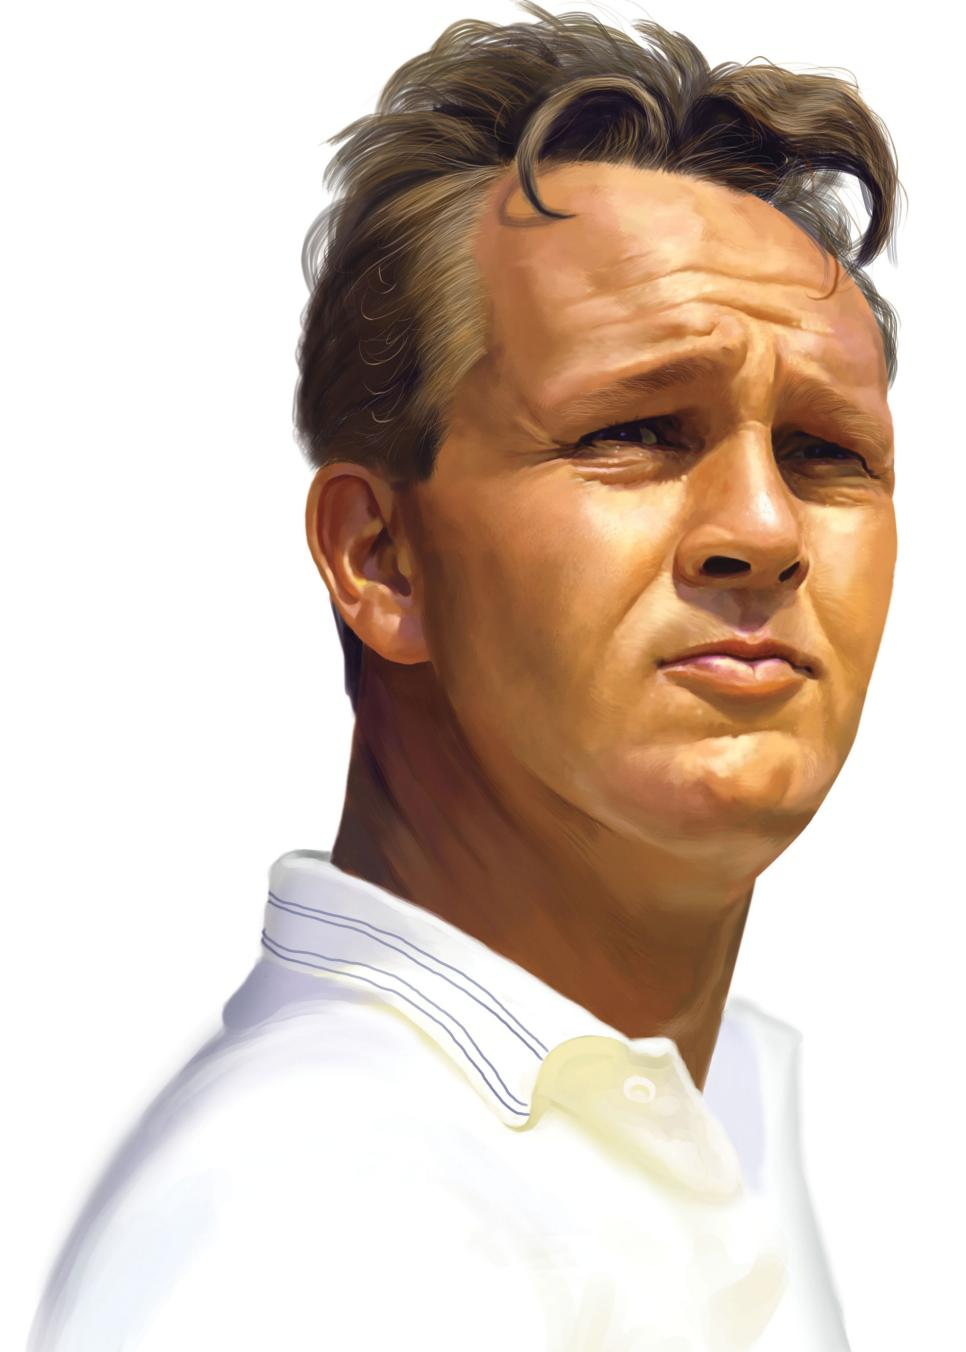 arnold-palmer-illustration.jpg